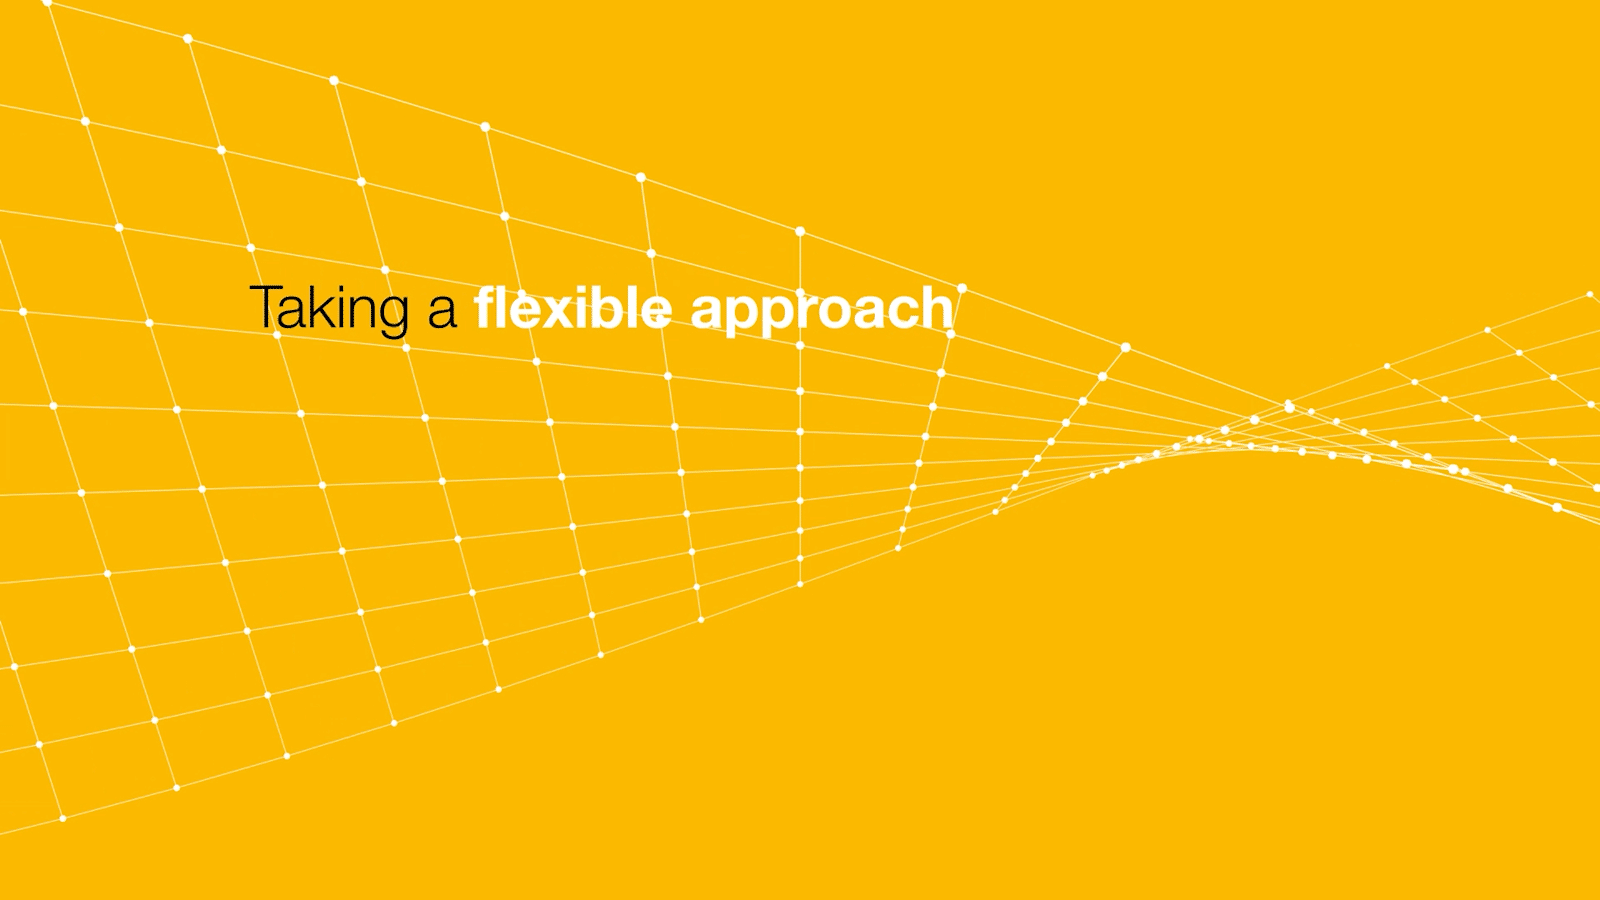 Animated Pitch Video - Crowe UK - Taking a Flexible Approach